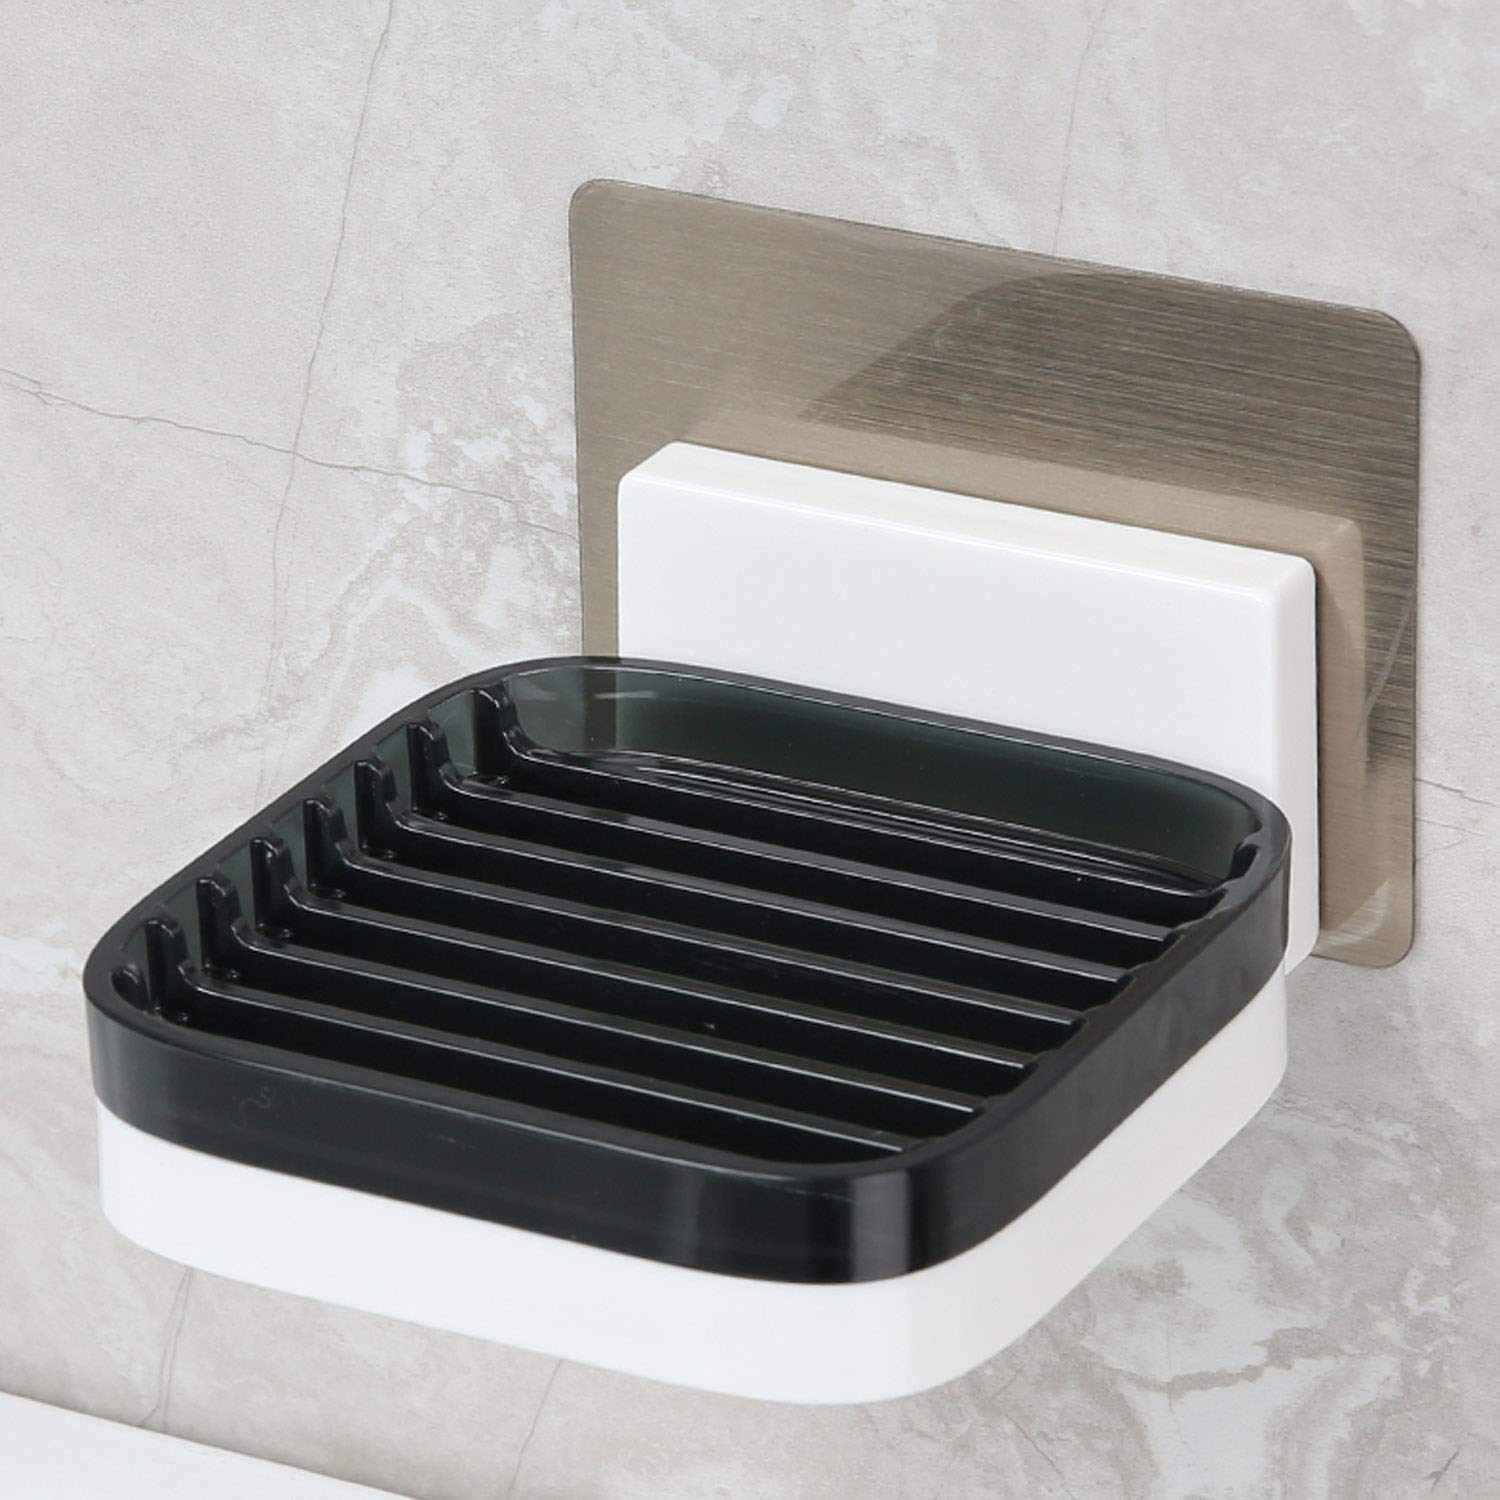 AND006917. Soap Holder